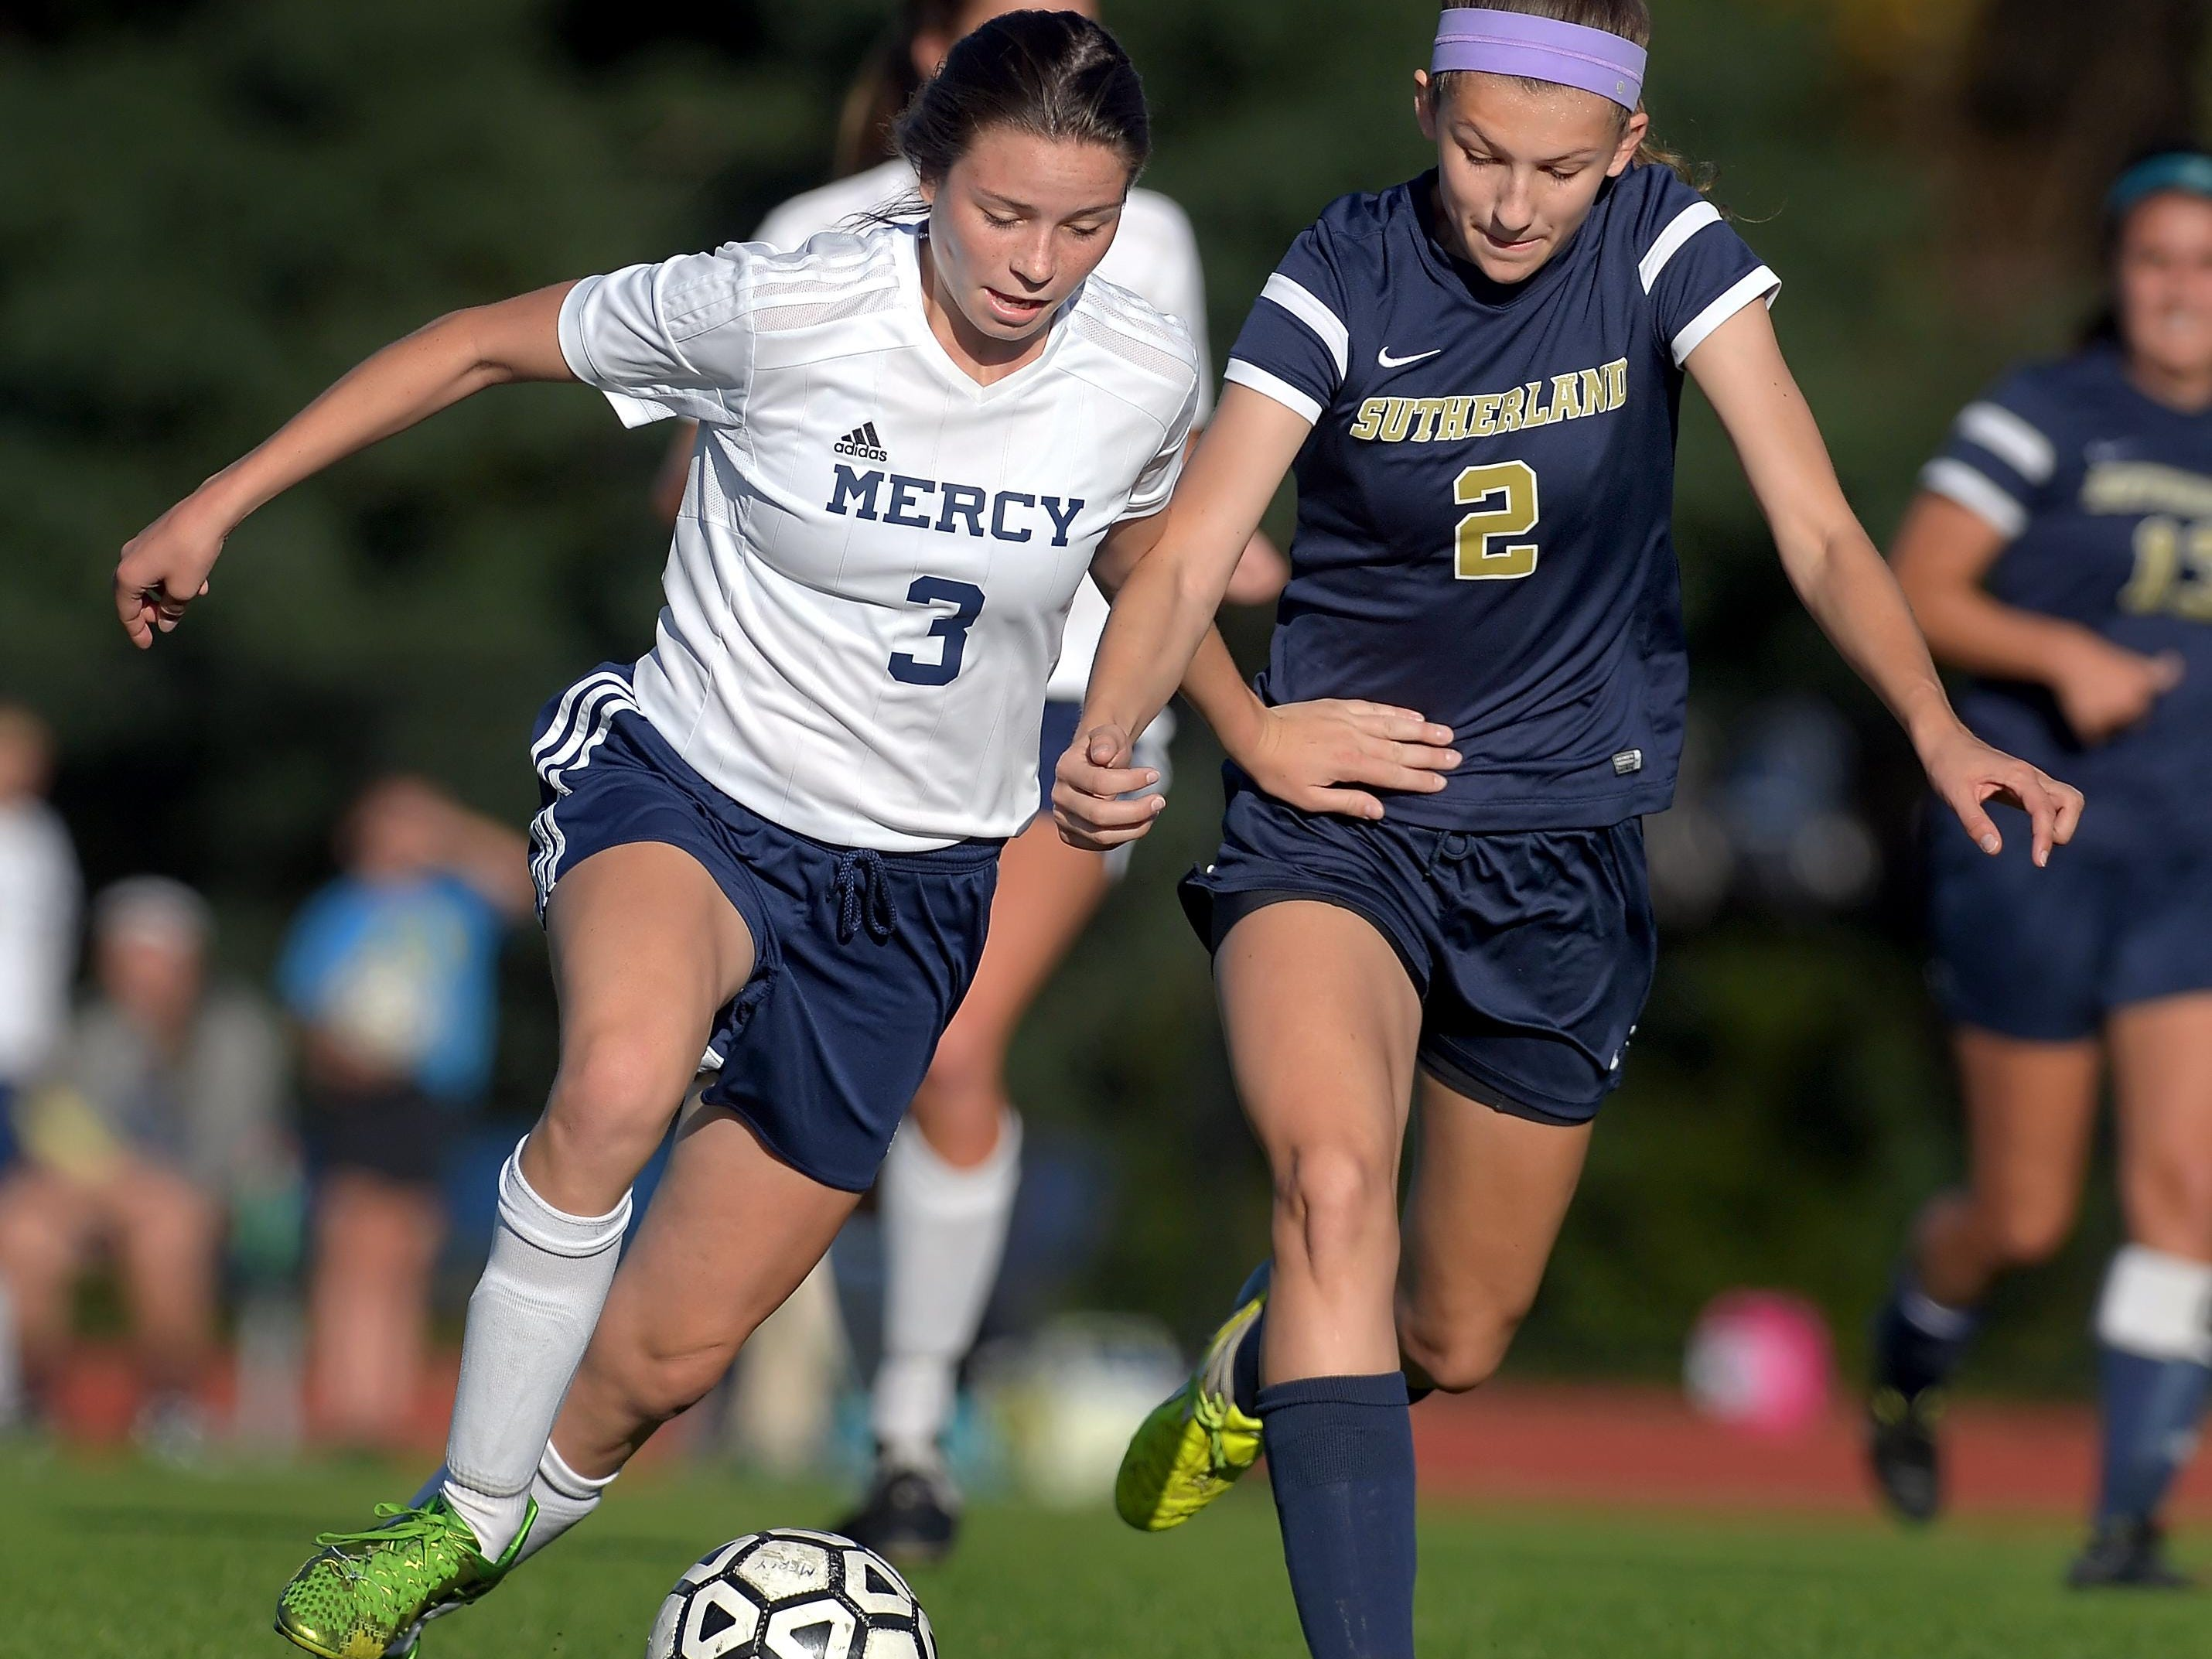 Mercy's Emily Wade, left, and Pittsford Sutherland's Claire Anvelt battle for position on the ball during a regular season game played at Our Lady of Mercy High School on Monday, October 12, 2015. Pittsford Sutherland beat Mercy 2-0.